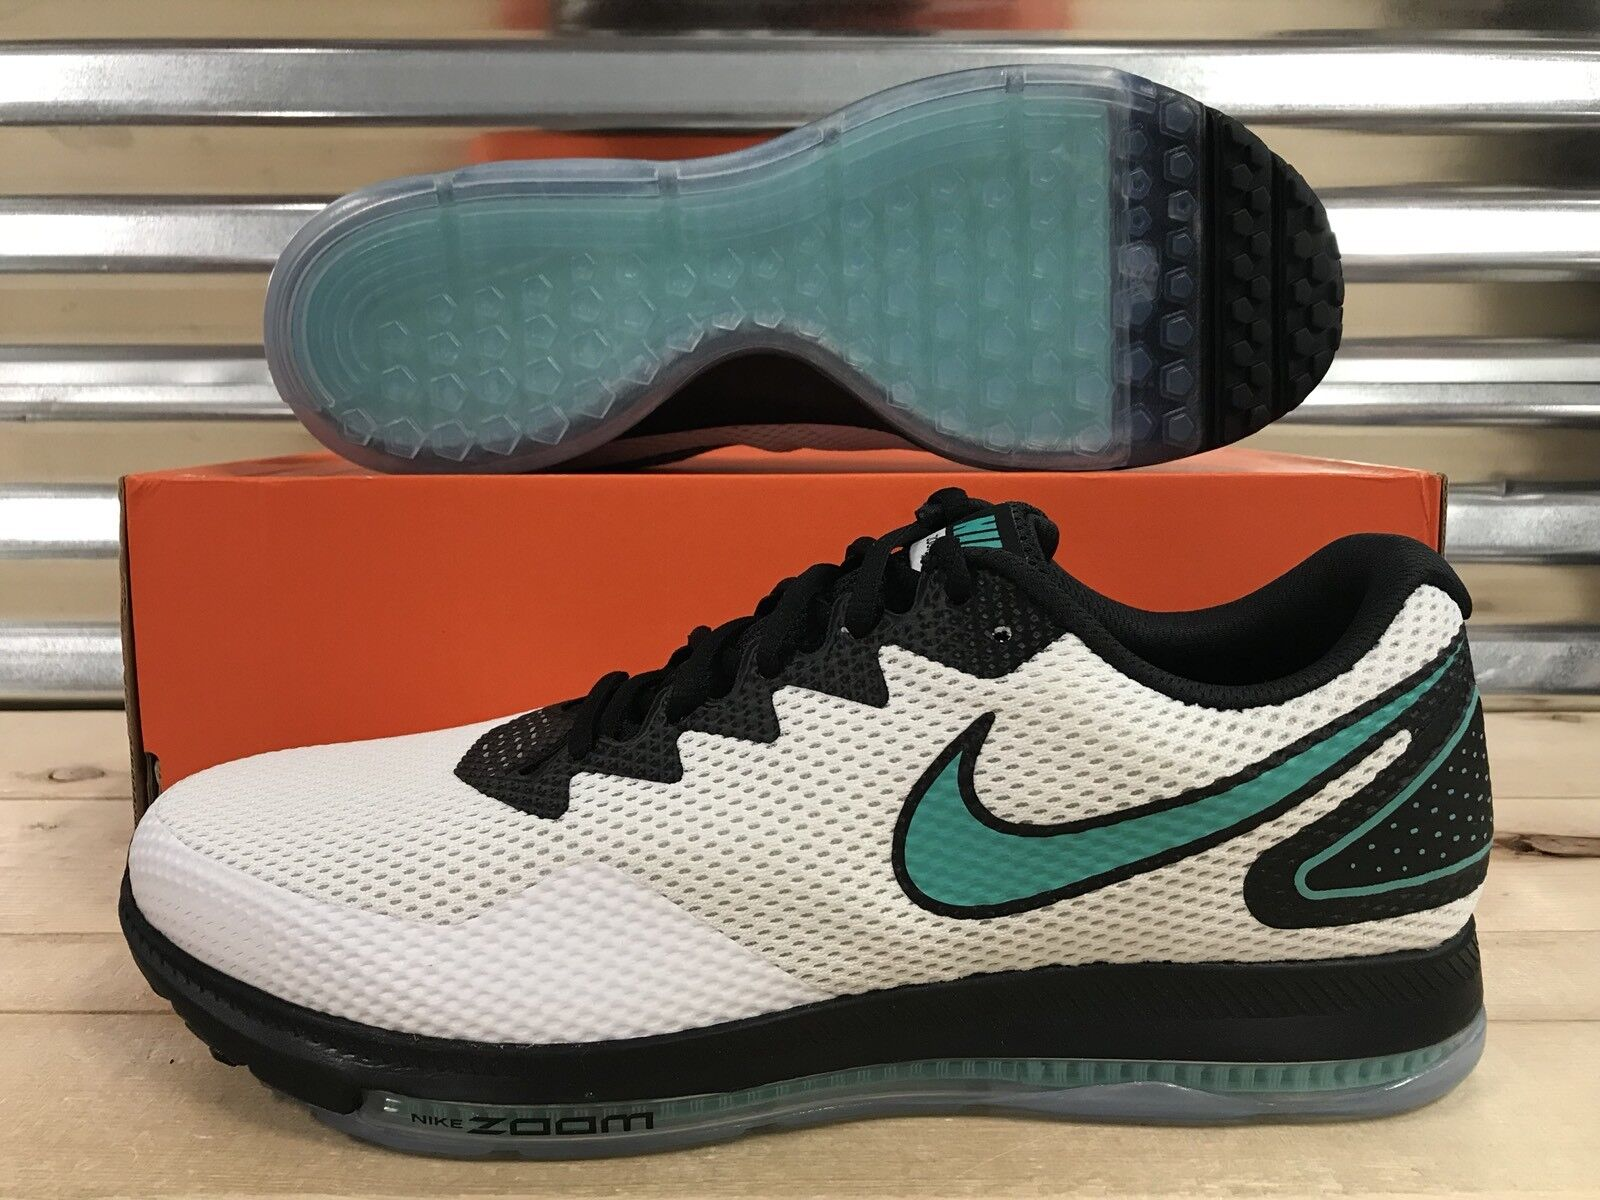 Nike Zoom All Out Low 2 Running Shoes White Clear Jade SZ 14 ( AJ0035-101 )